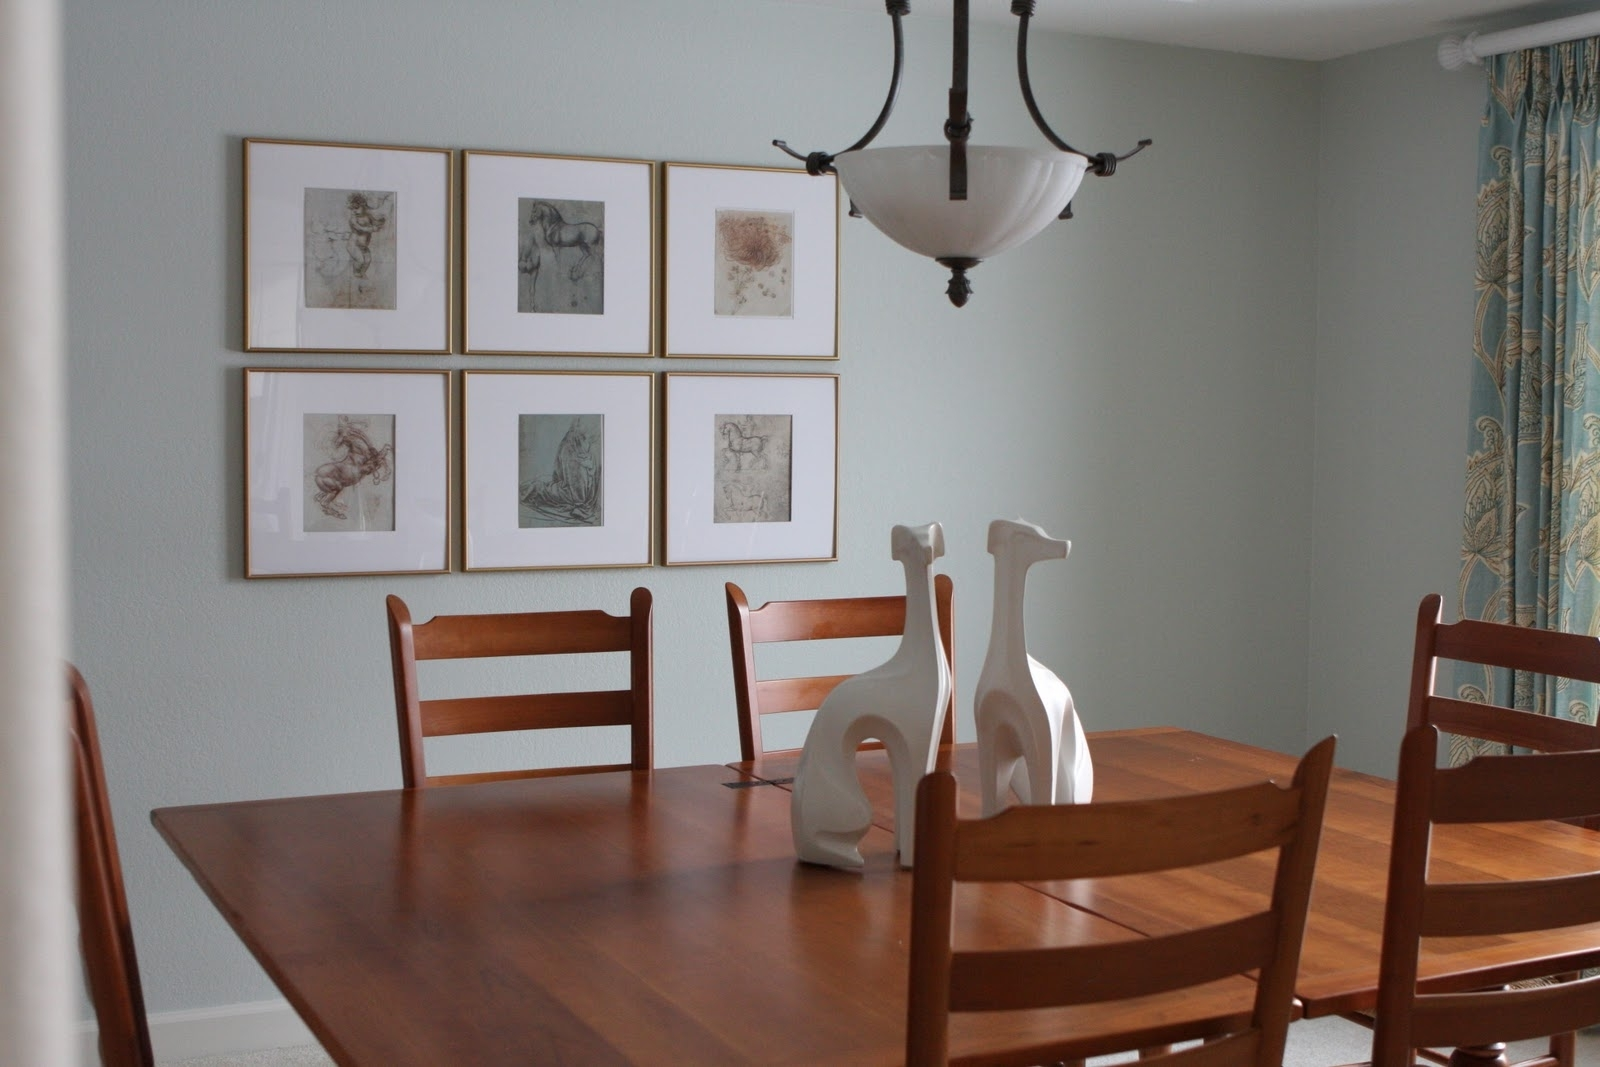 2017 Wall Art For Dining Room Regarding Dining Room Wall Art Contemporary With Photos Of Dining Room Decor (View 7 of 15)